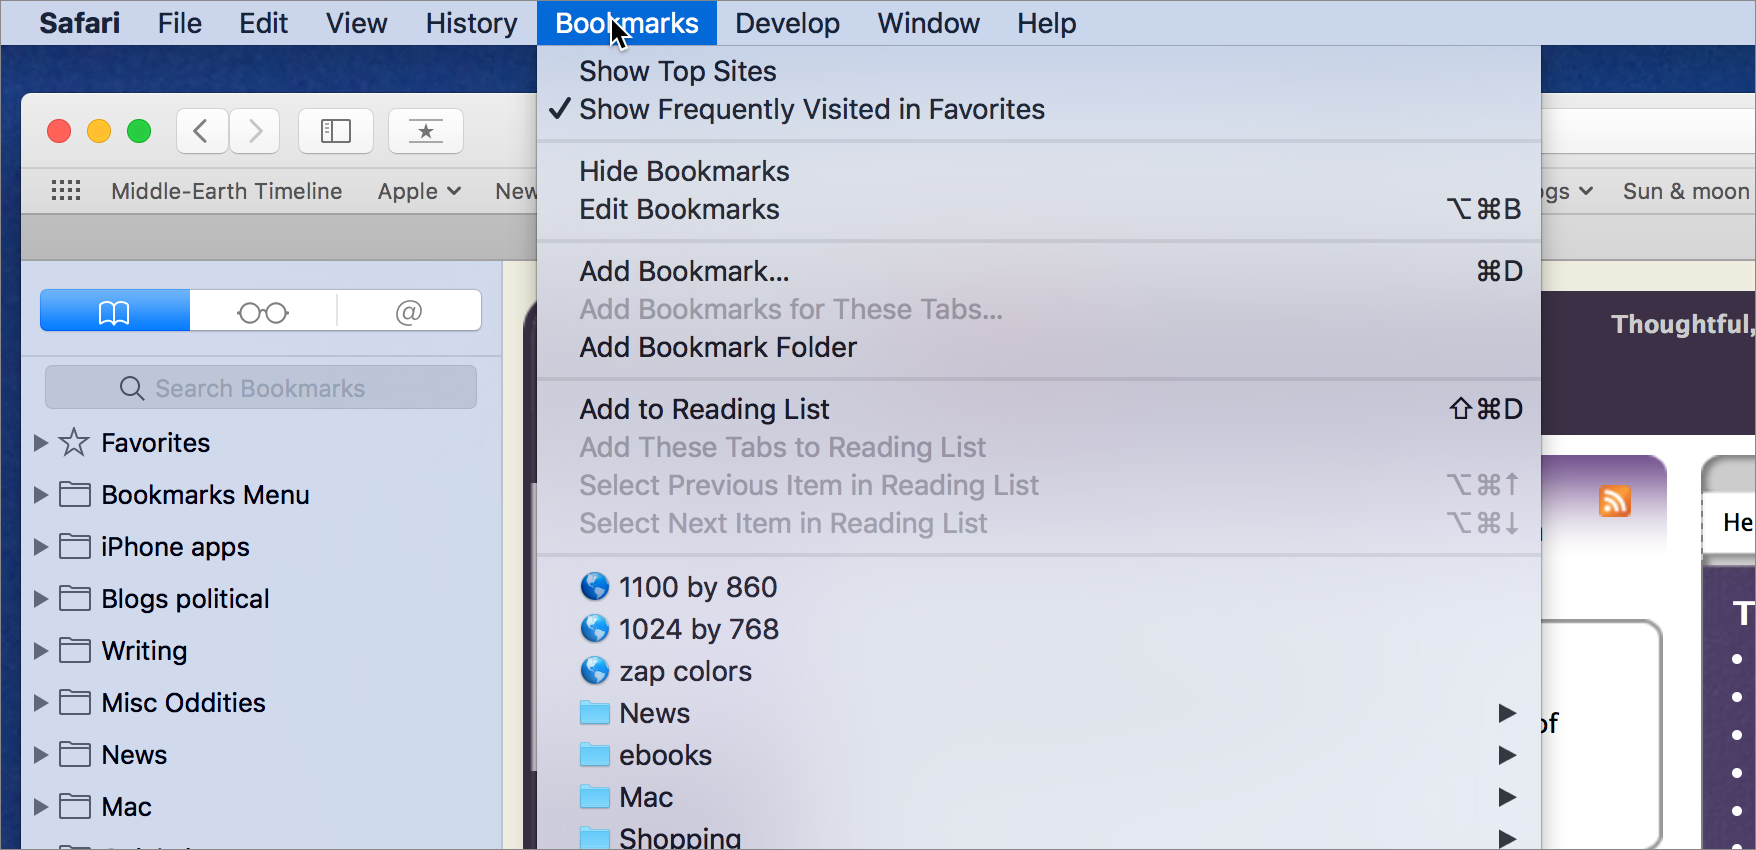 There Are Several Ways To Add Bookmarks In Safari The Most Traditional Is  By Choosing Bookmarks > Add Bookmark (commandd), Which Presents A Dialog  With